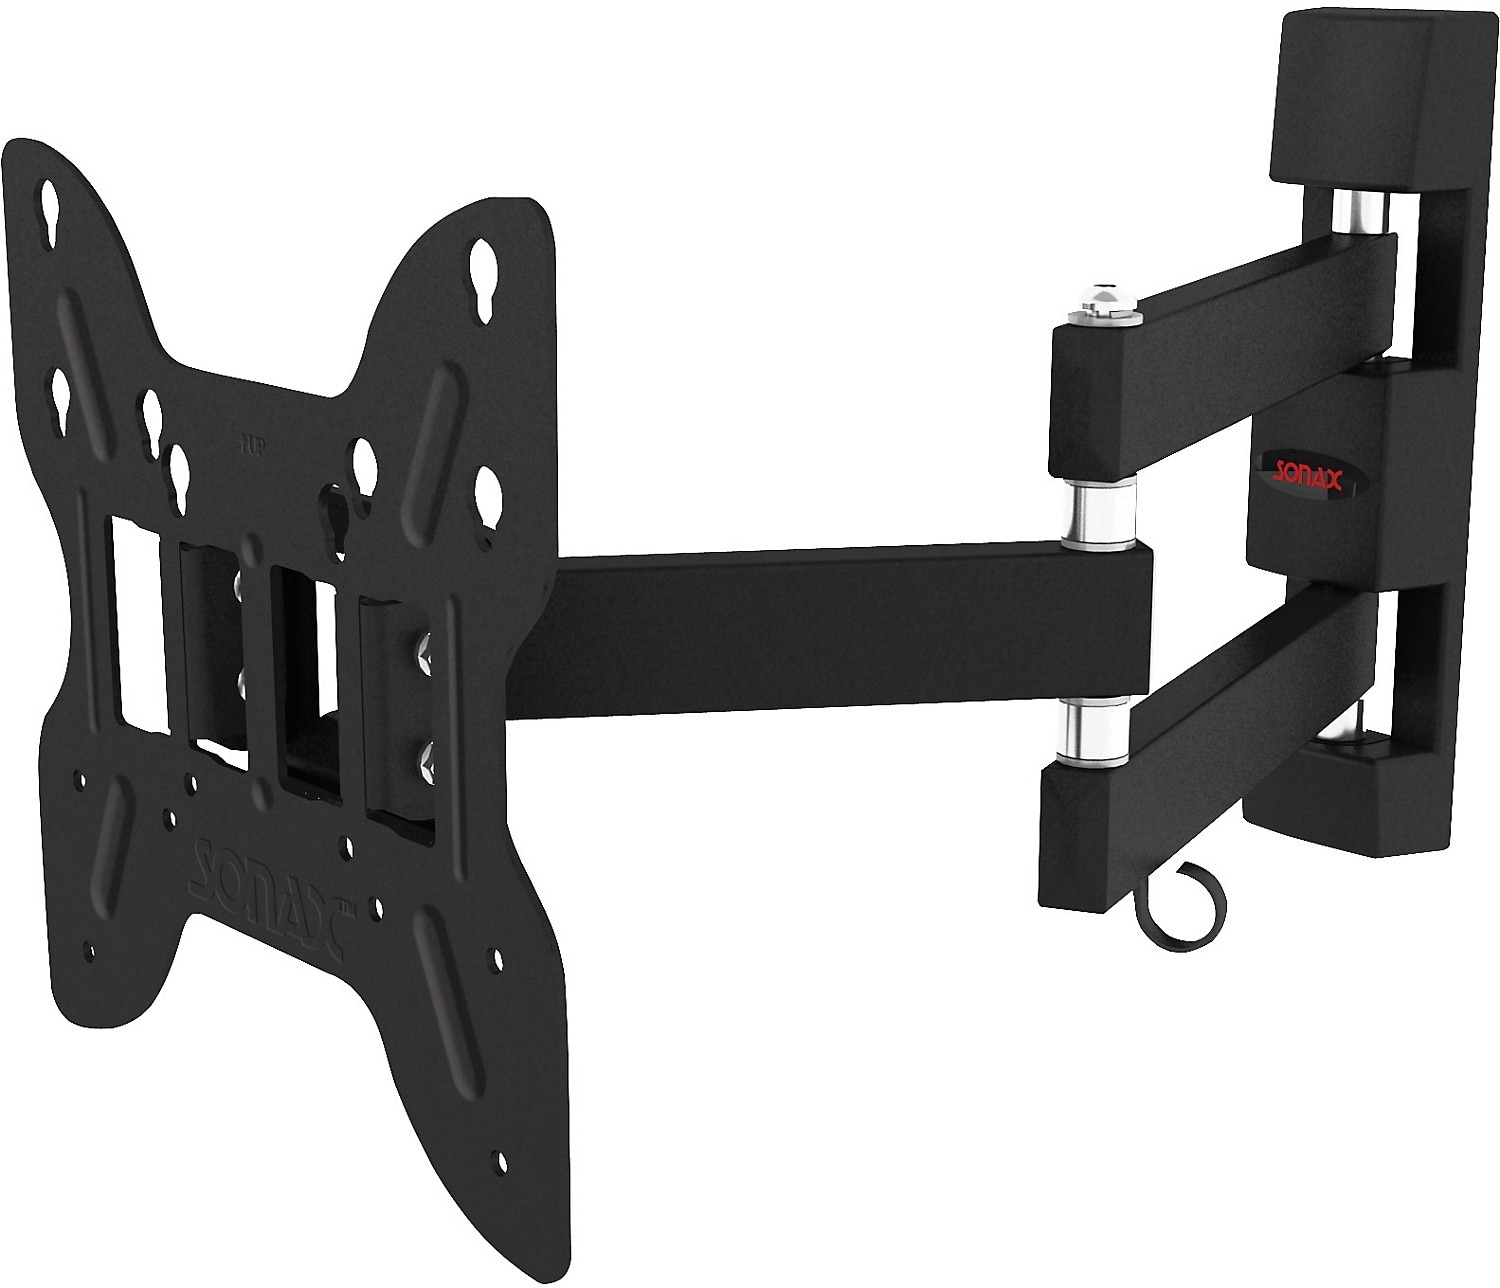 "Televisions - Sonax Adjustable 14"" - 40"" Full Motion Flat Panel TV Wall Mount – Black"